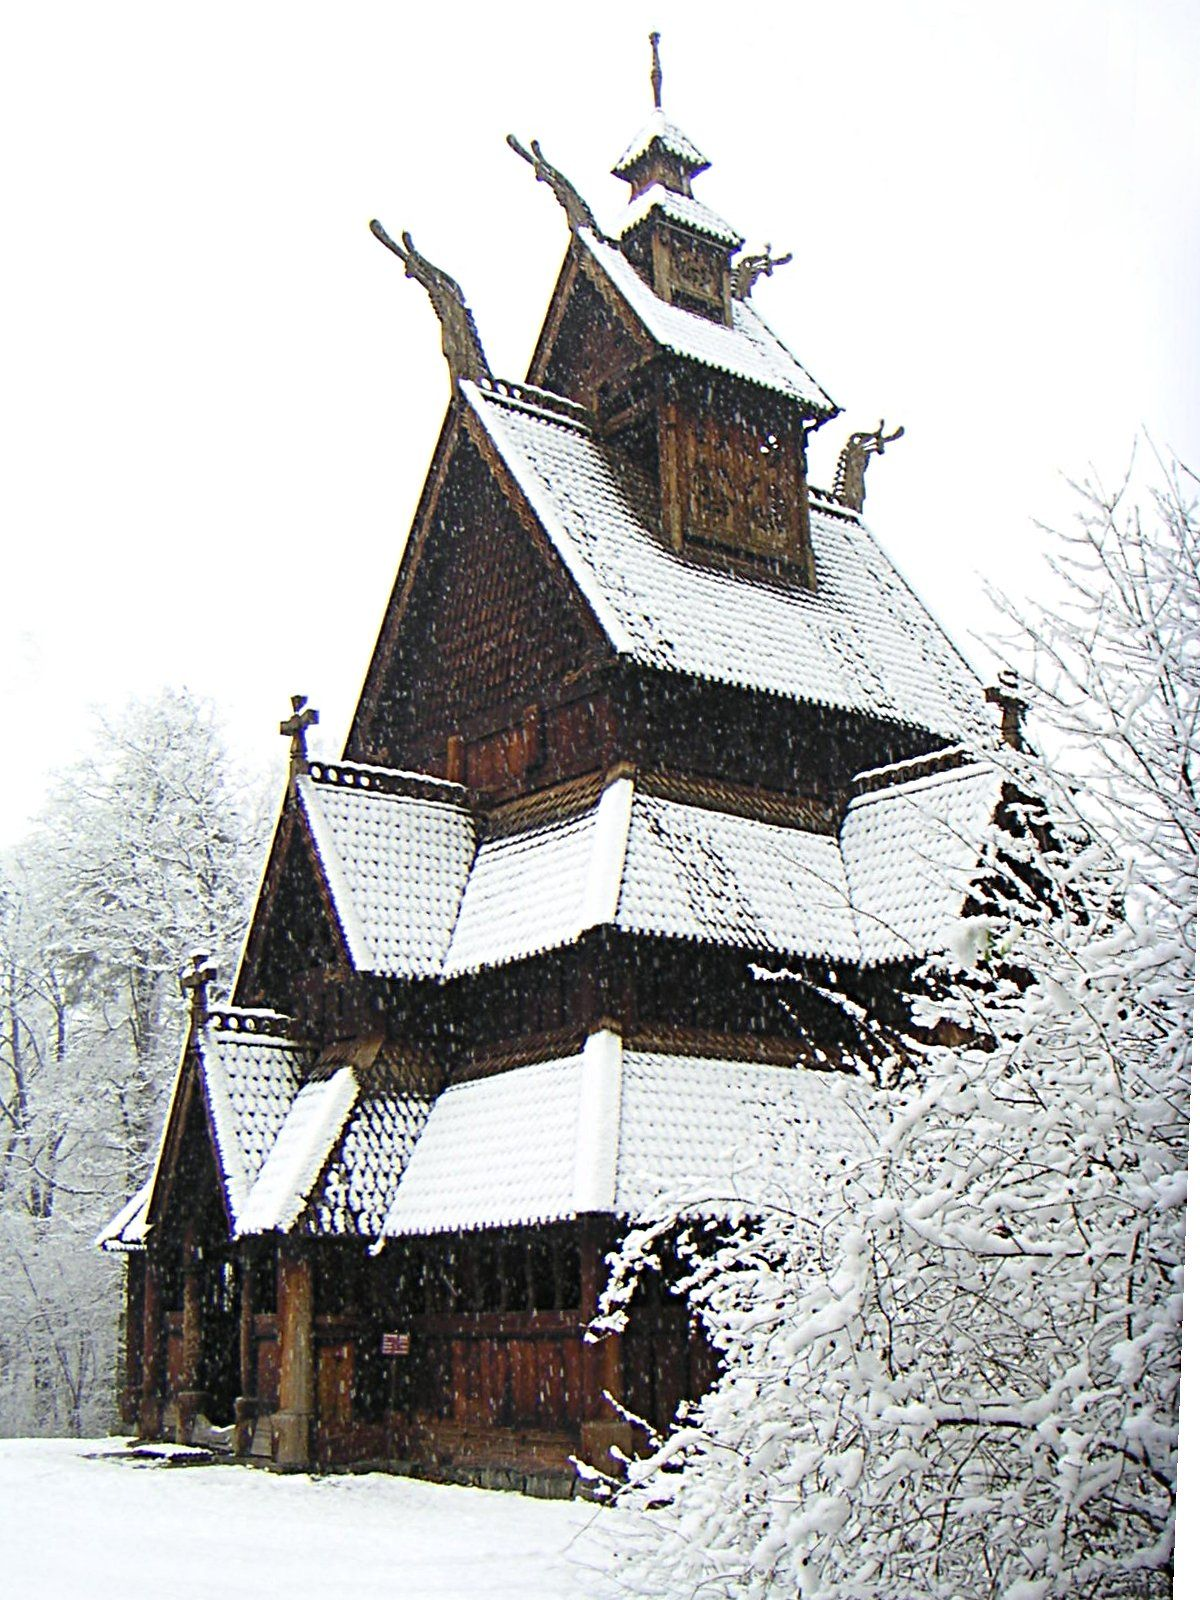 Norwegian old wooden church covered in snow built during